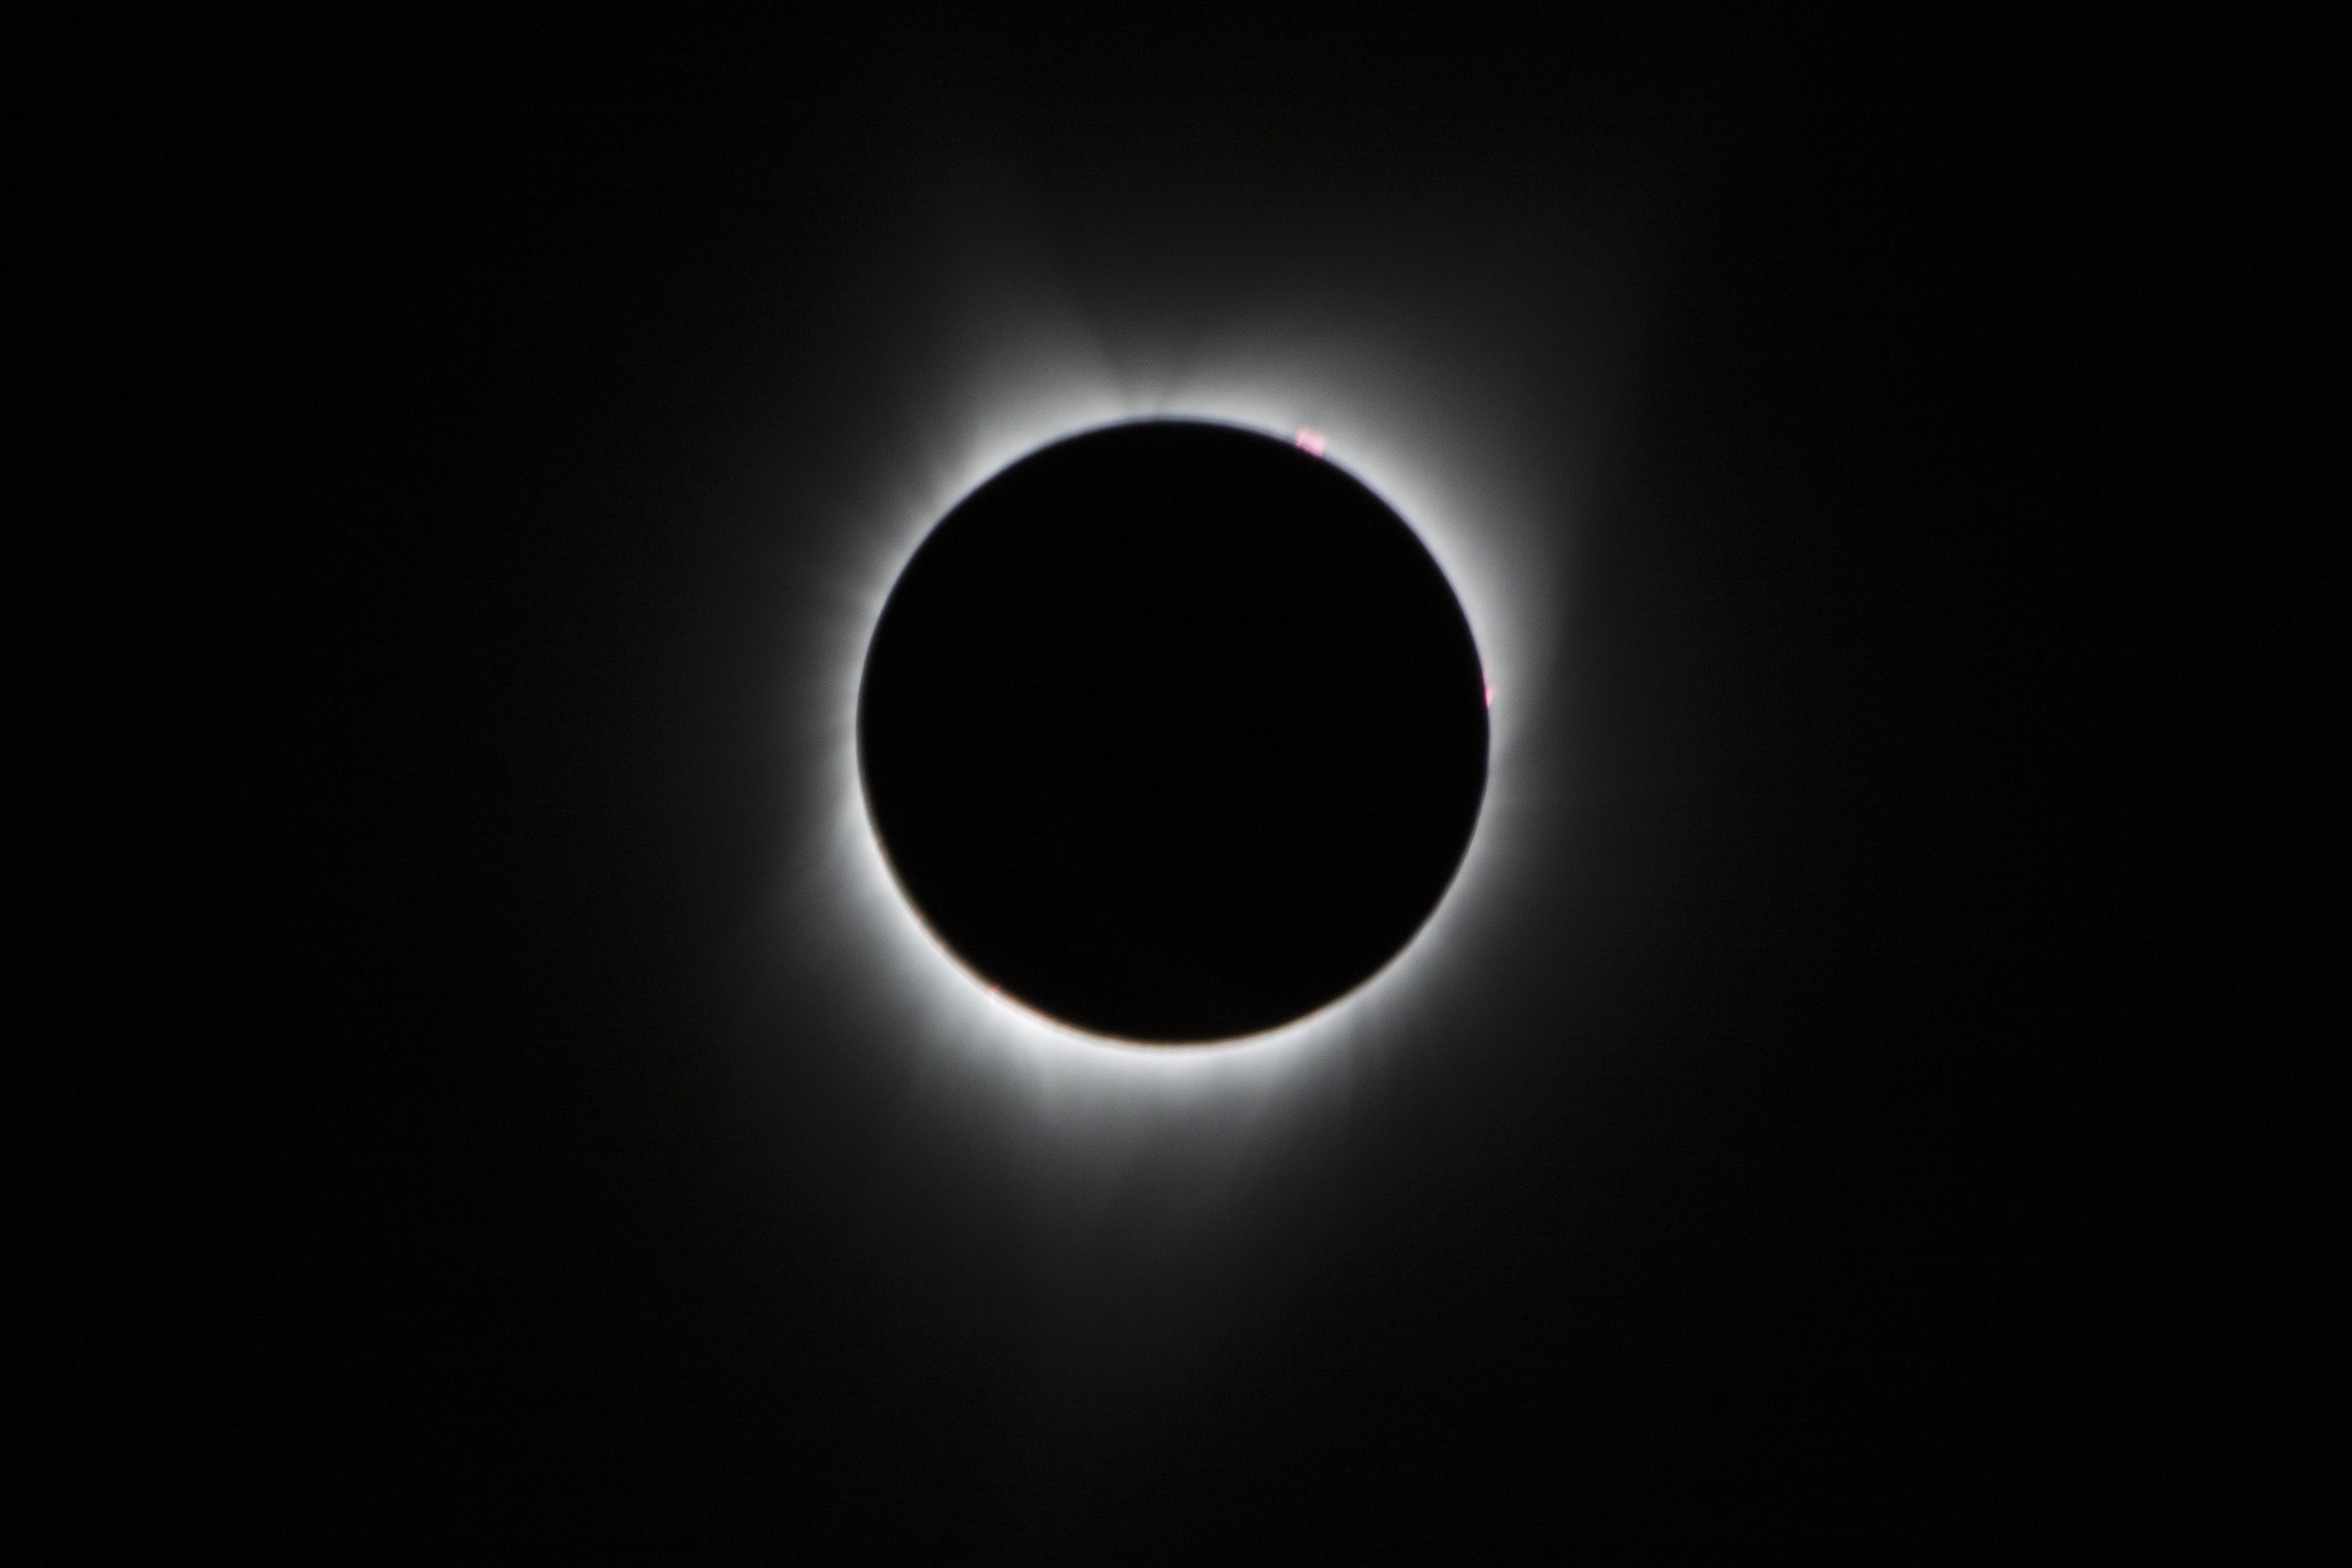 August 2017 Eclipse. Photo:  NASA / Carla Thomas